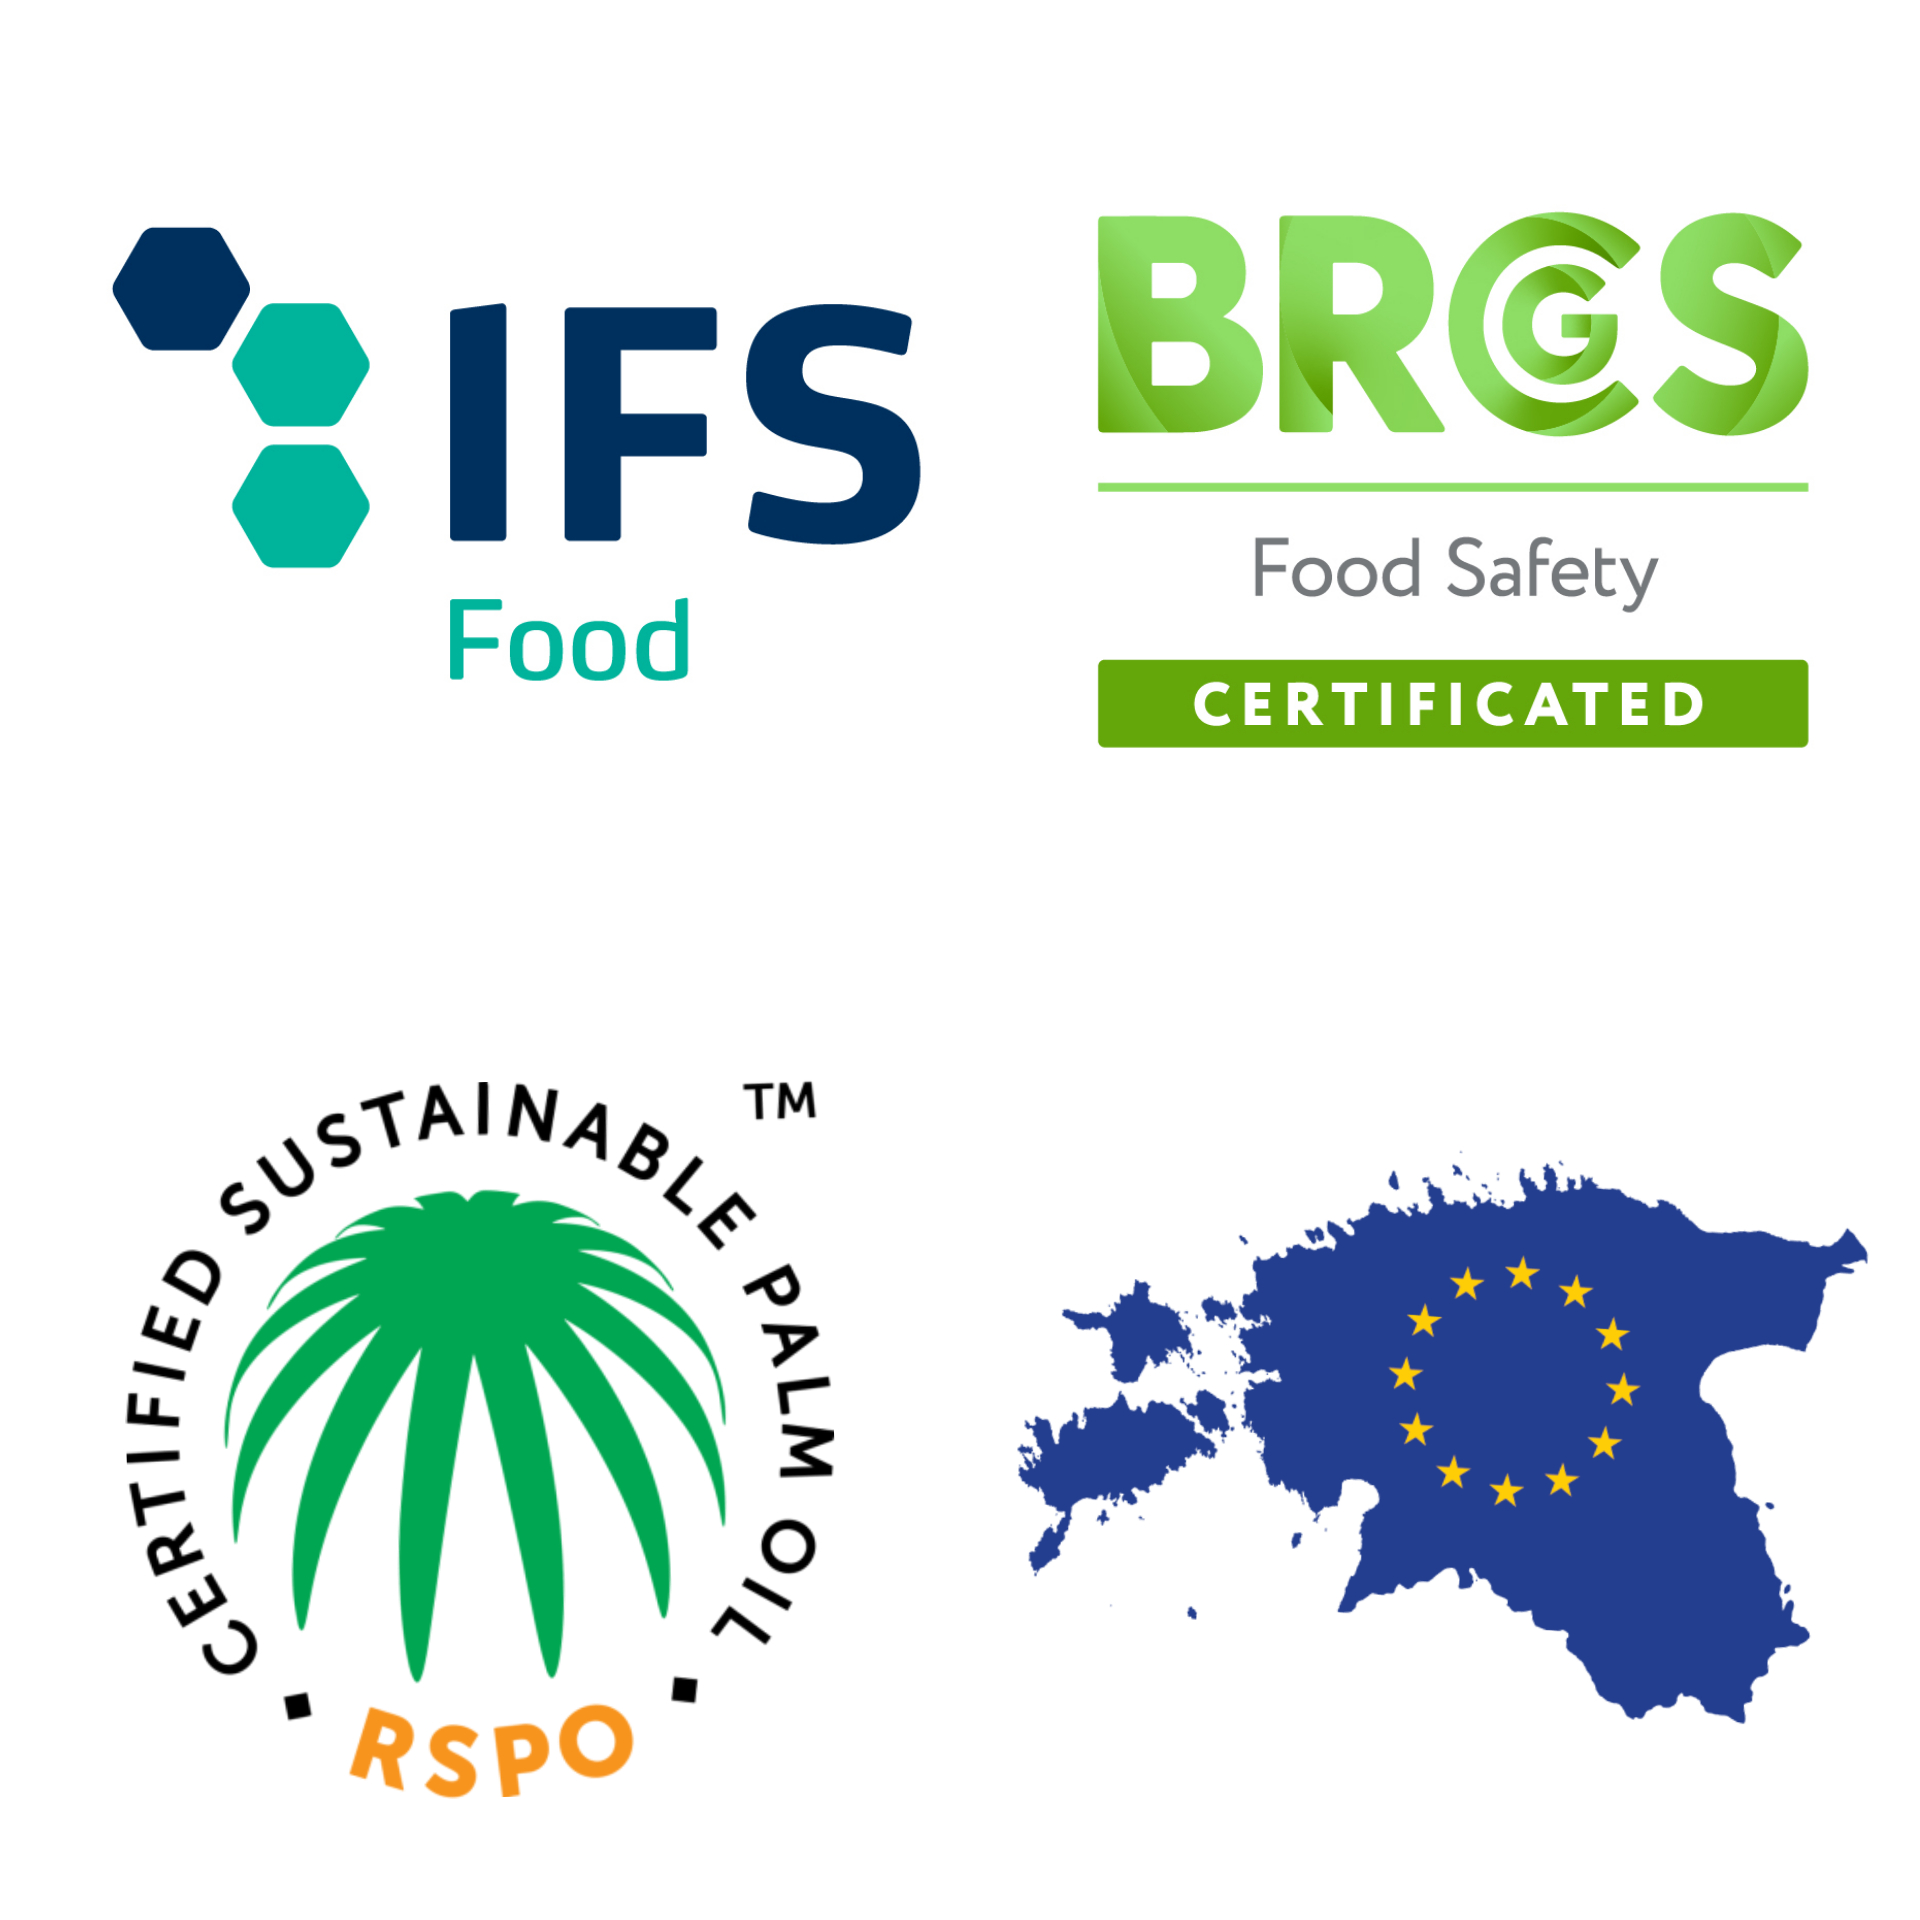 IFS and BRC logos